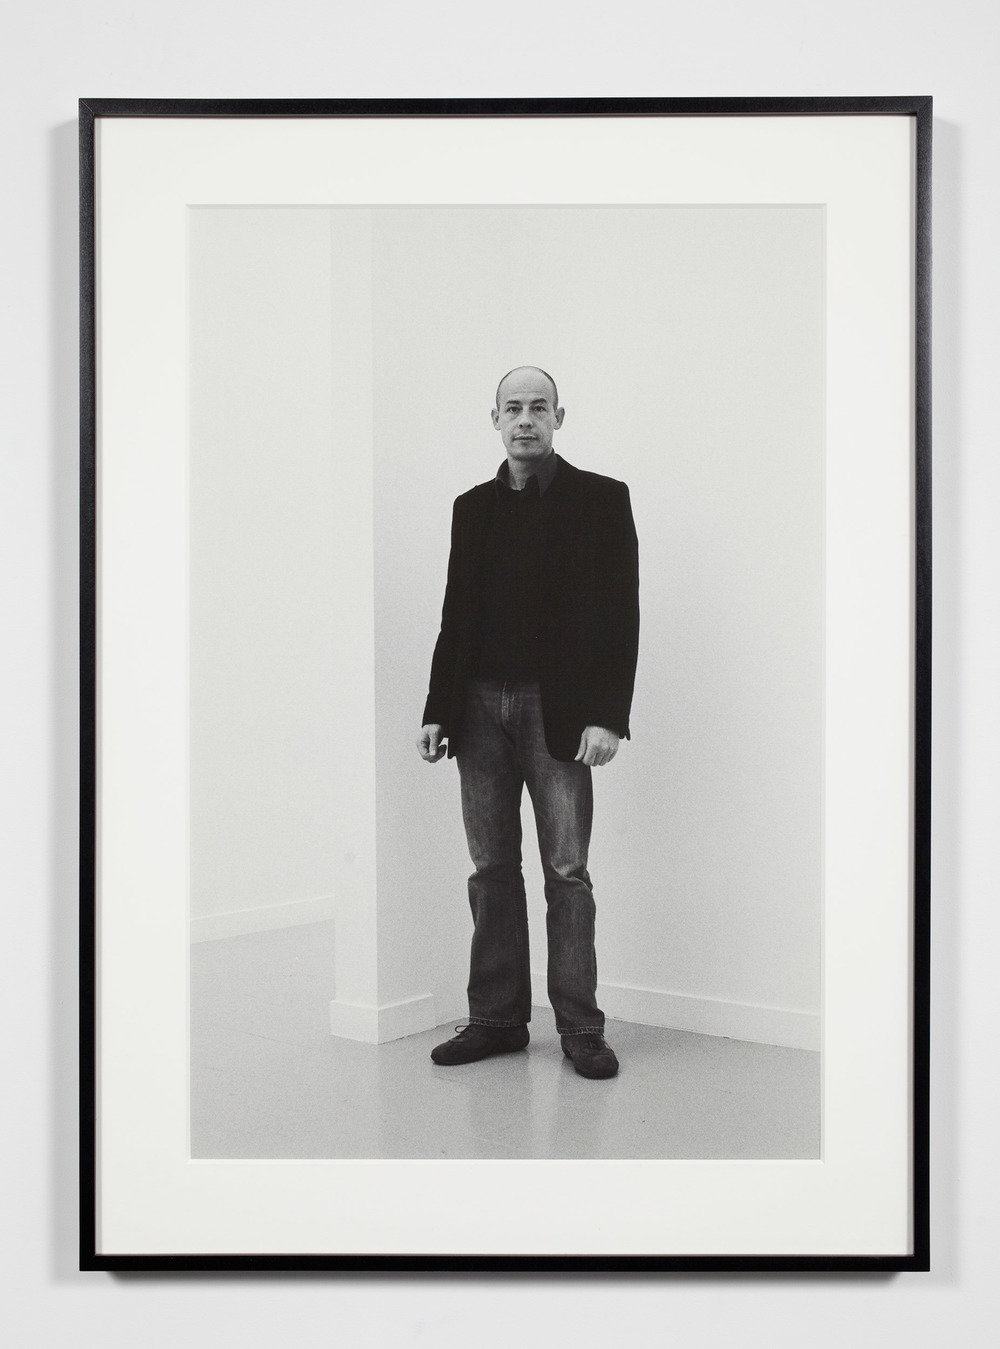 Gallery Director (FC), Brussels, Belgium, November 6, 2008    2009   Epson Ultrachrome K3 archival ink jet print on Hahnemühle Photo Rag paper  36 3/8 x 26 3/8 inches   Industrial Portraits, 2008–